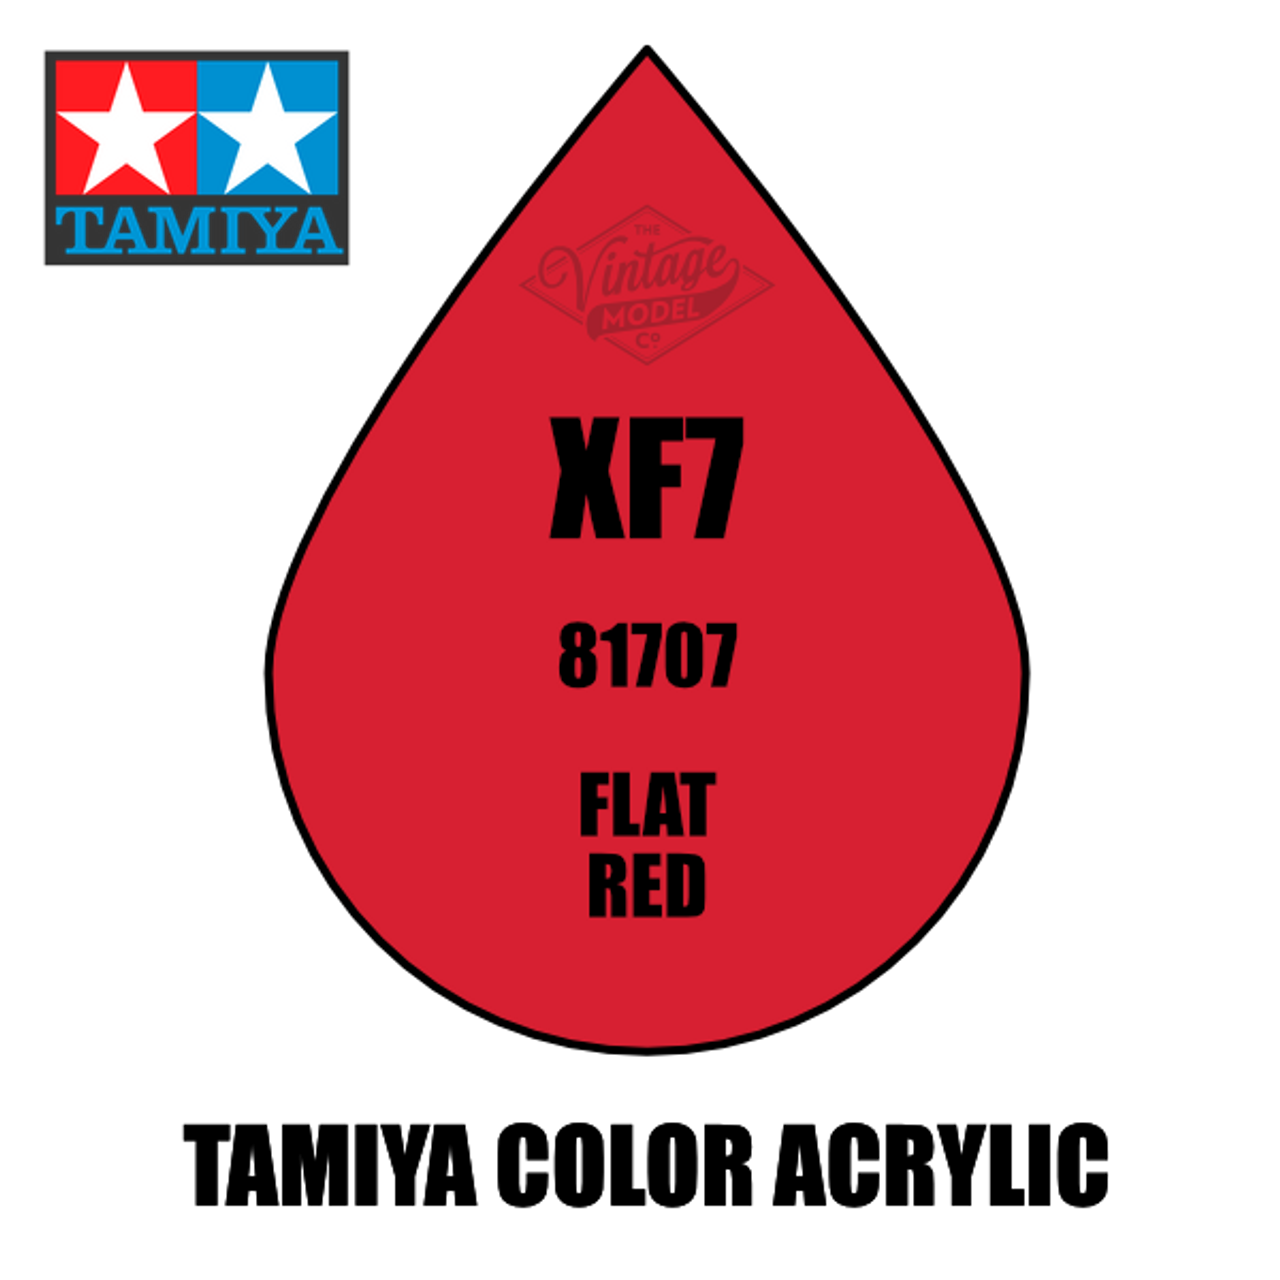 Tamiya Mini XF-07 Flat Red 10ml Acrylic Paint